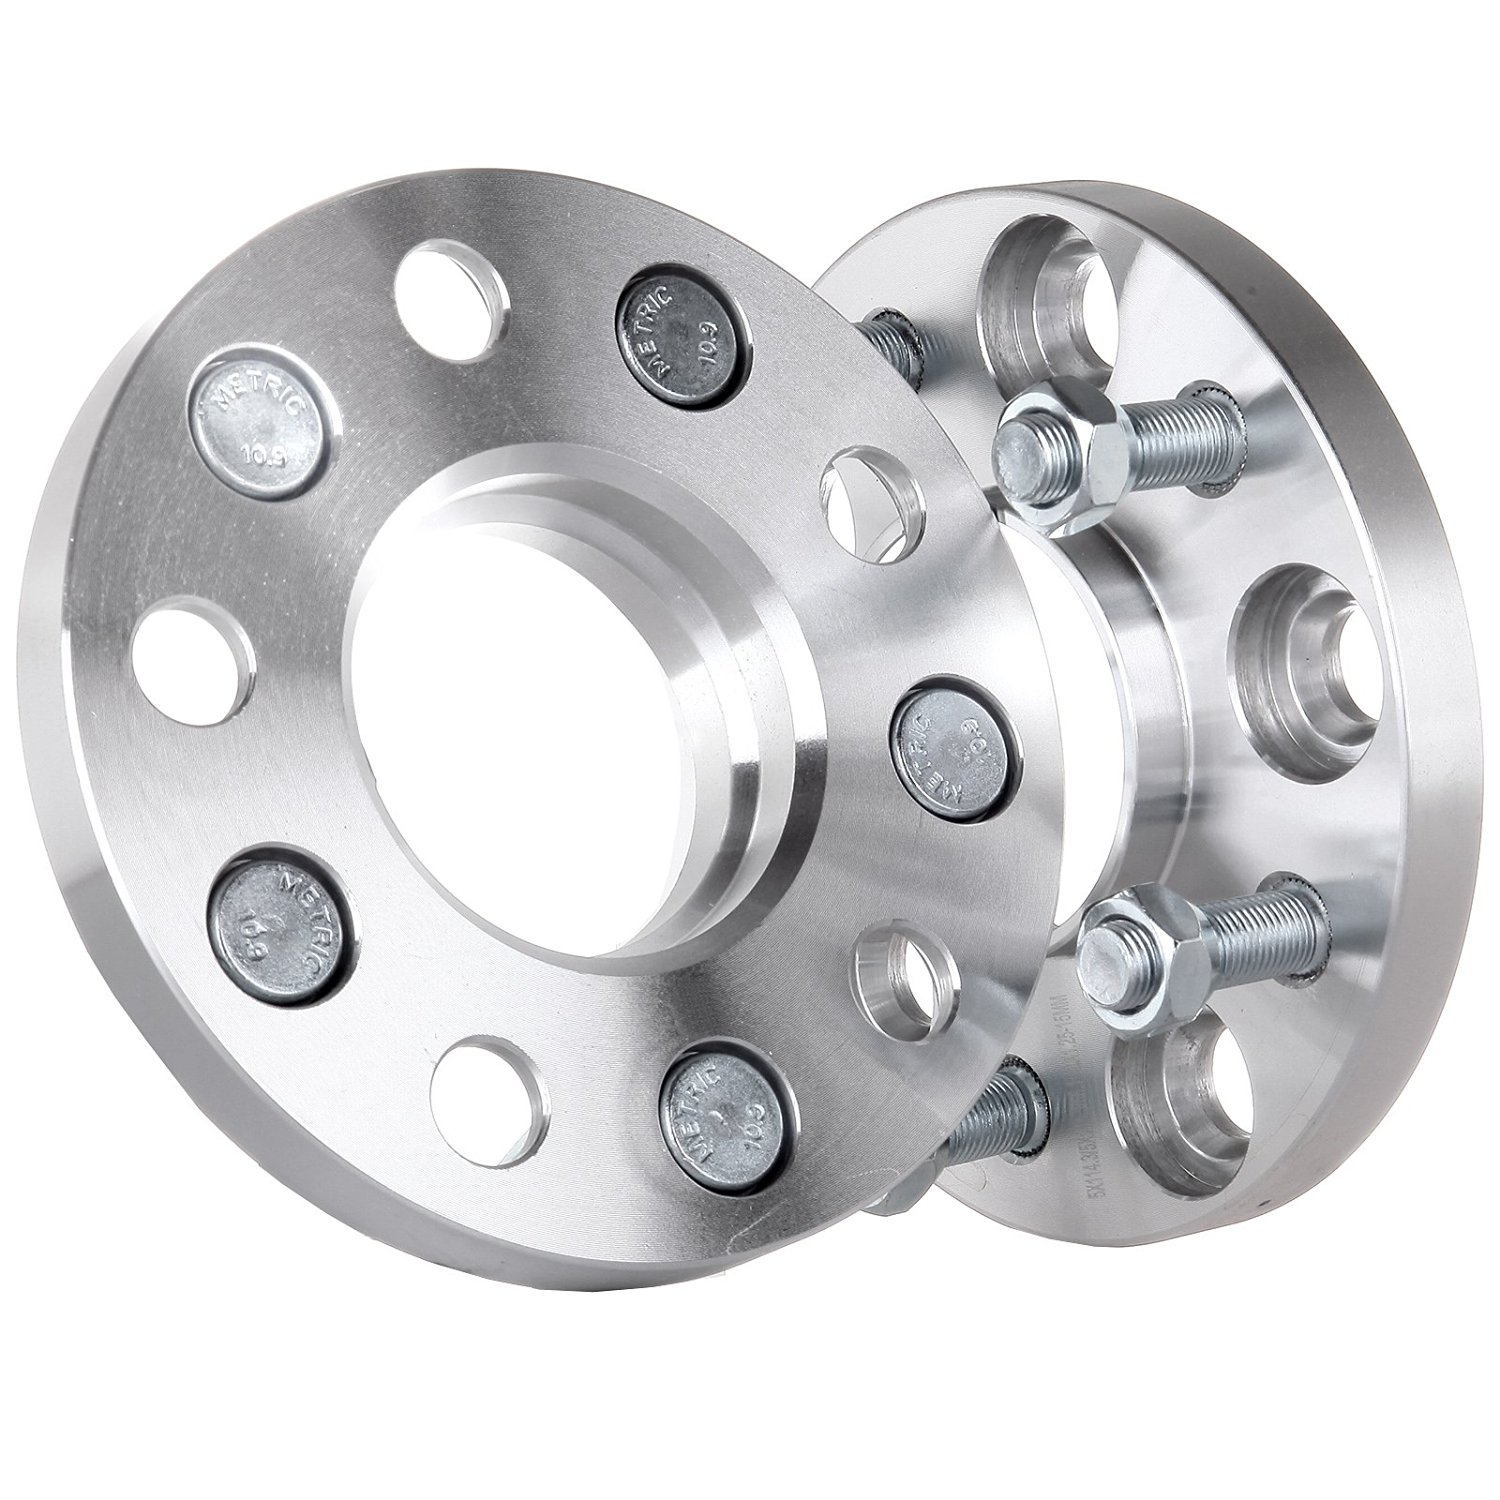 Scitoo 2X HUBCENTRIC WHEEL SPACERS ADAPTERS ¦ 5x114.3 ¦ 12X1.25 ¦ 66.1 CB ¦ 15MM THICK For Nissan 350Z Maxima Infiniti M35 FX50 EX37